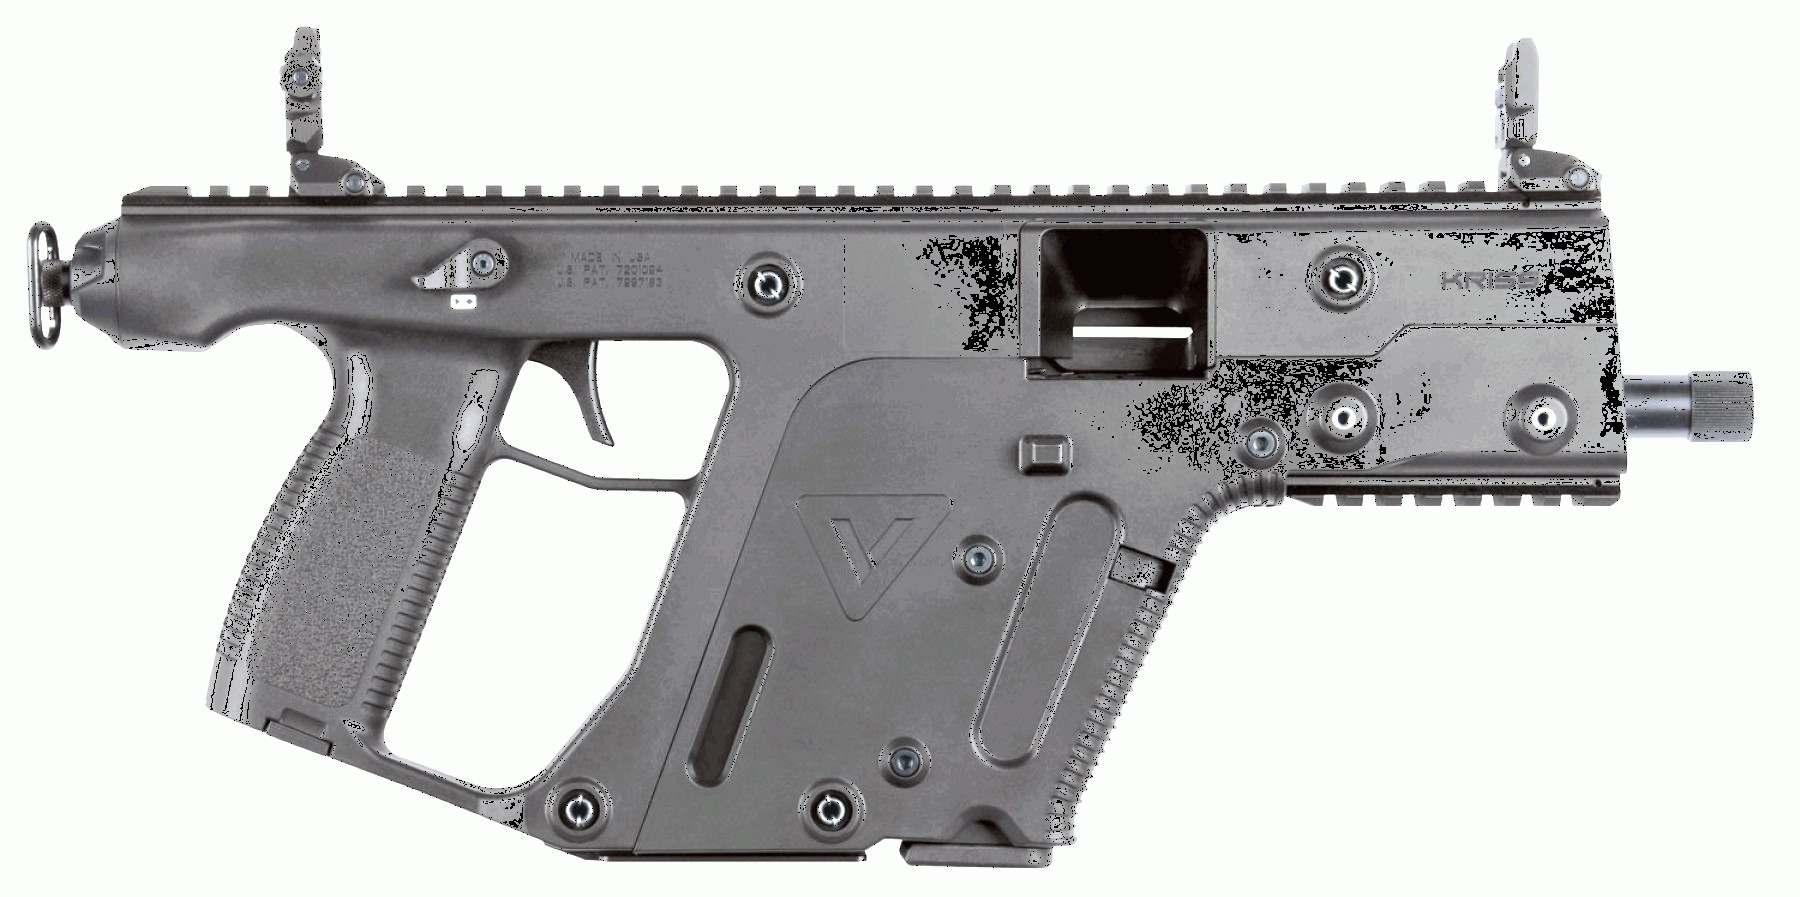 Kriss Vector Gen 1 Rail: Kriss Usa Kvpbl Vector Gen Ii Pistol Semi Automatic Mm